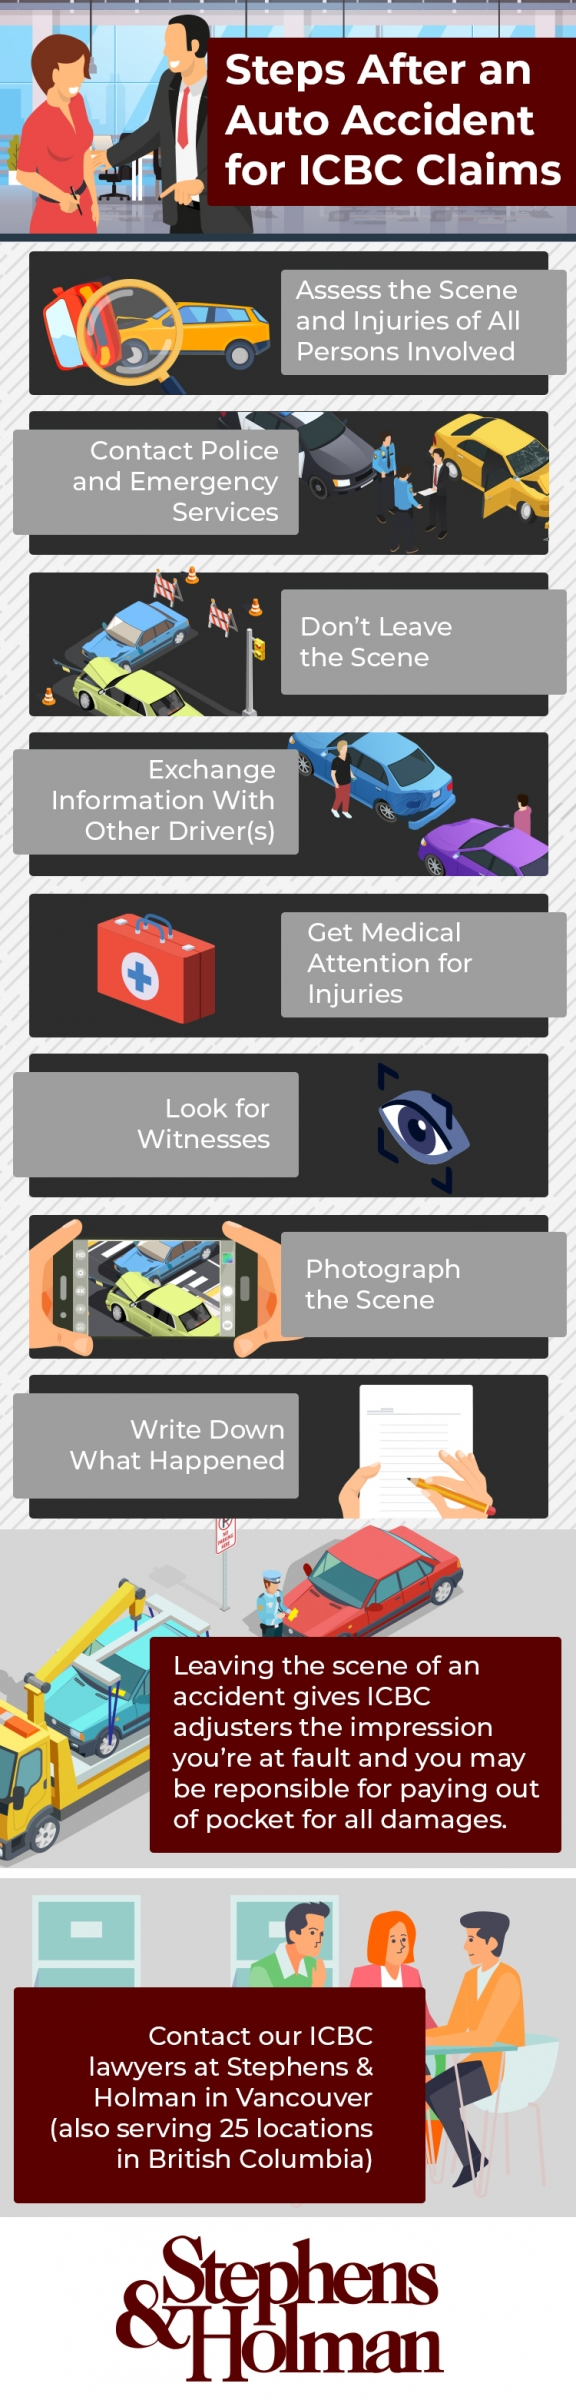 Infographic explains steps after auto accident for ICBC claim